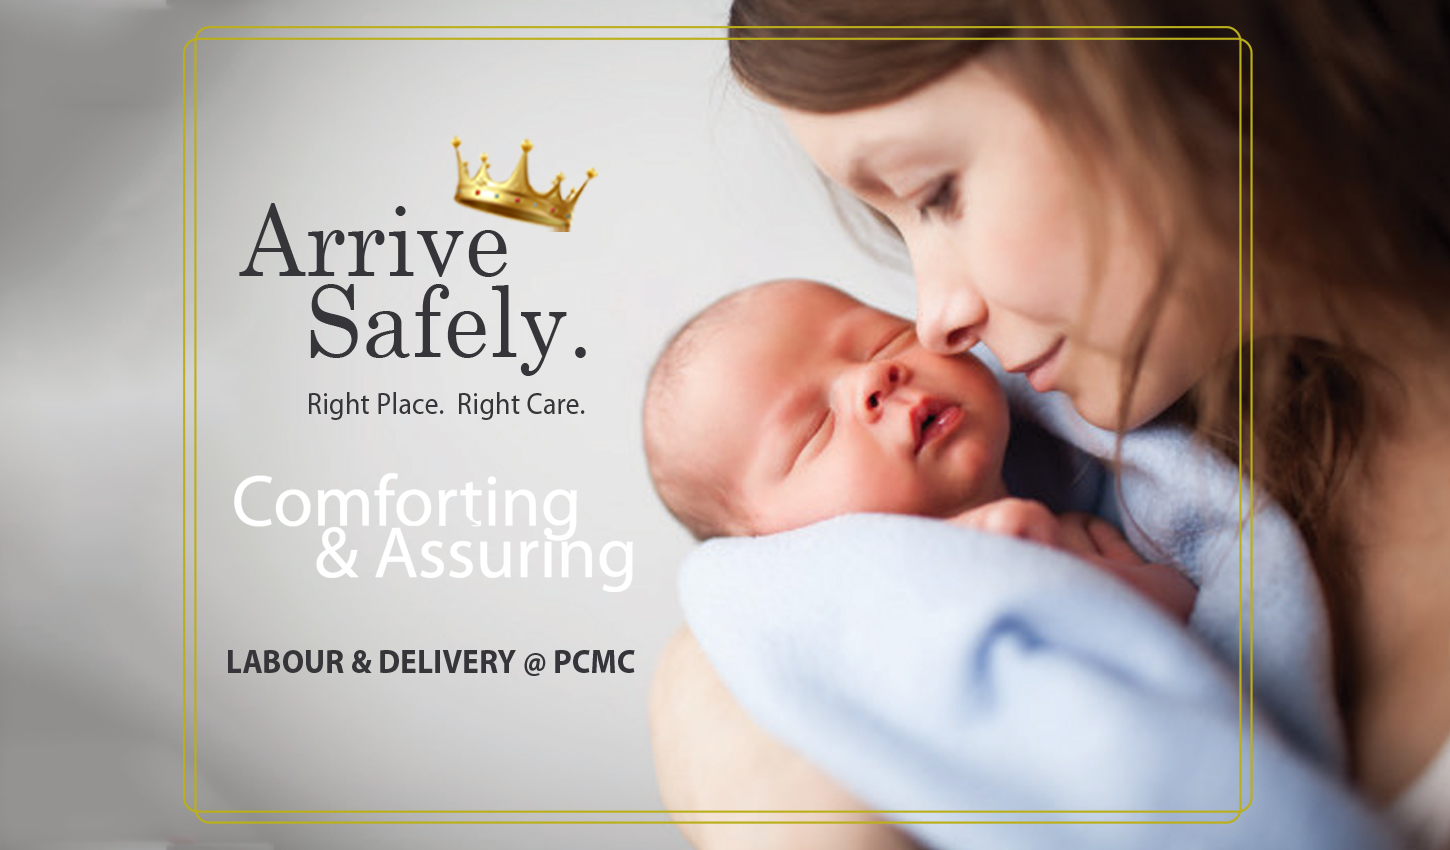 Labour & Delivery @ PCMC